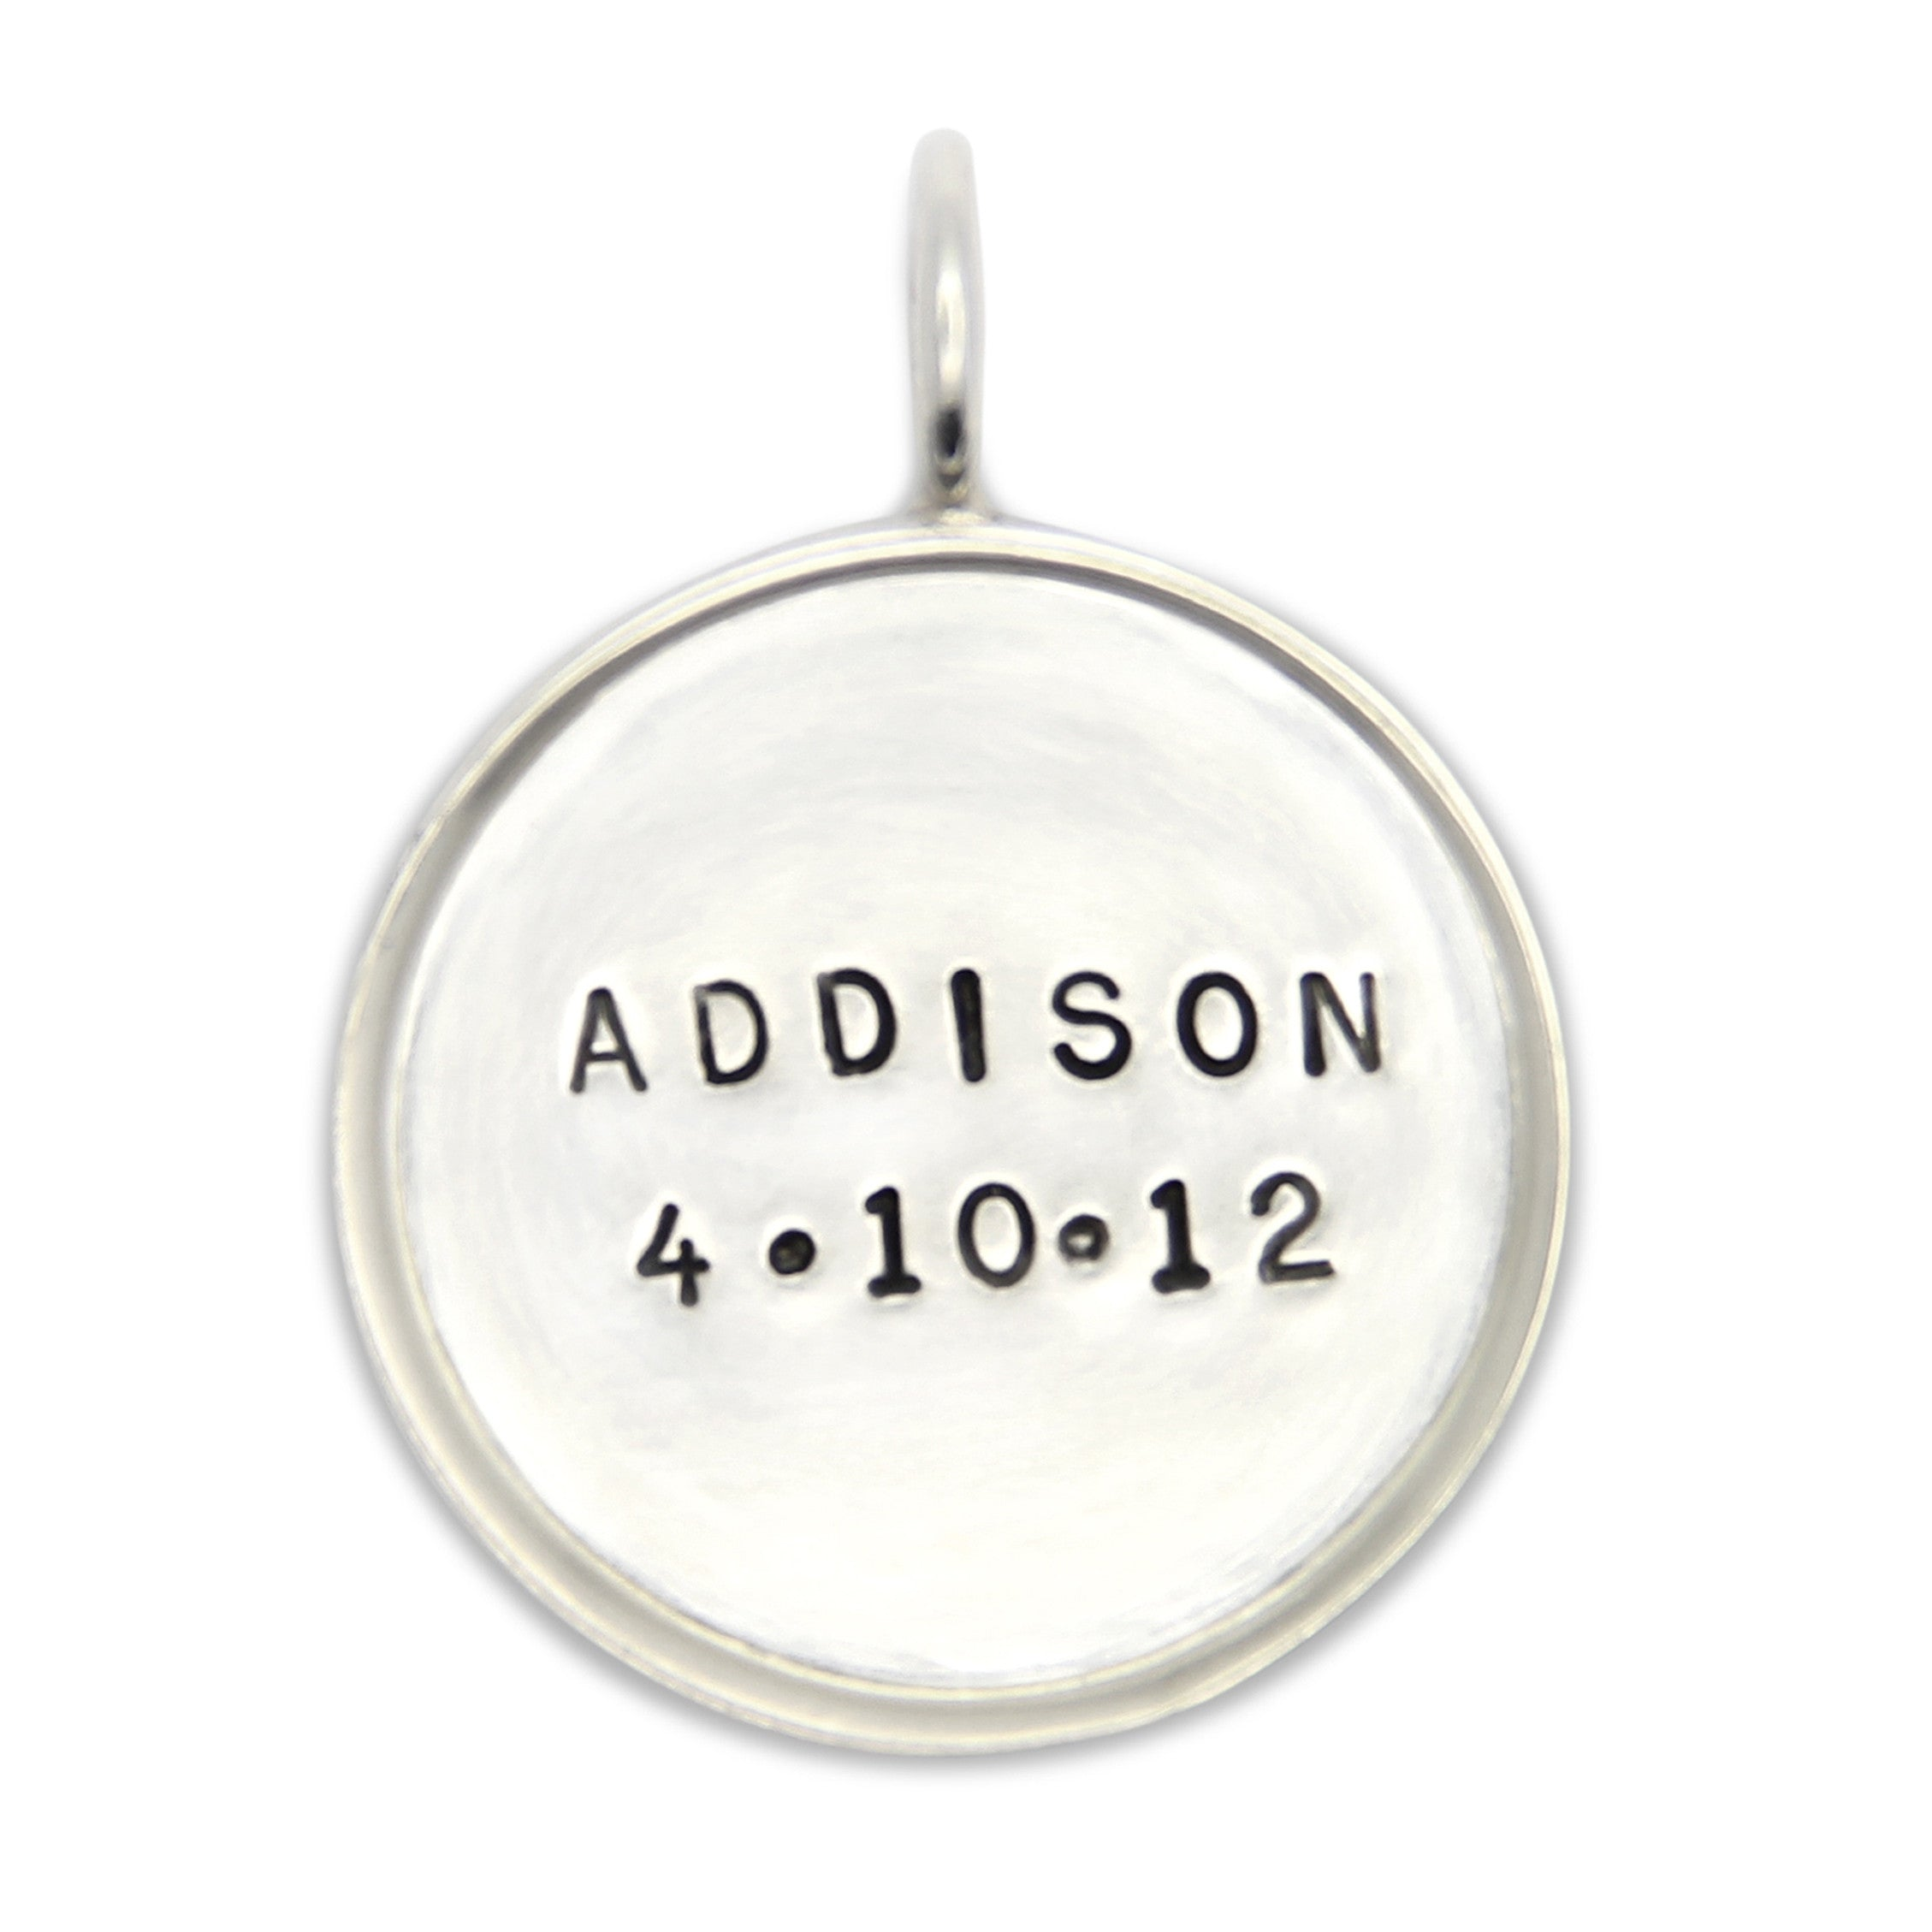 Hand stamped sterling silver pendant with rim personalized name tag hand stamped sterling silver name pendant personalized jewelry aloadofball Gallery